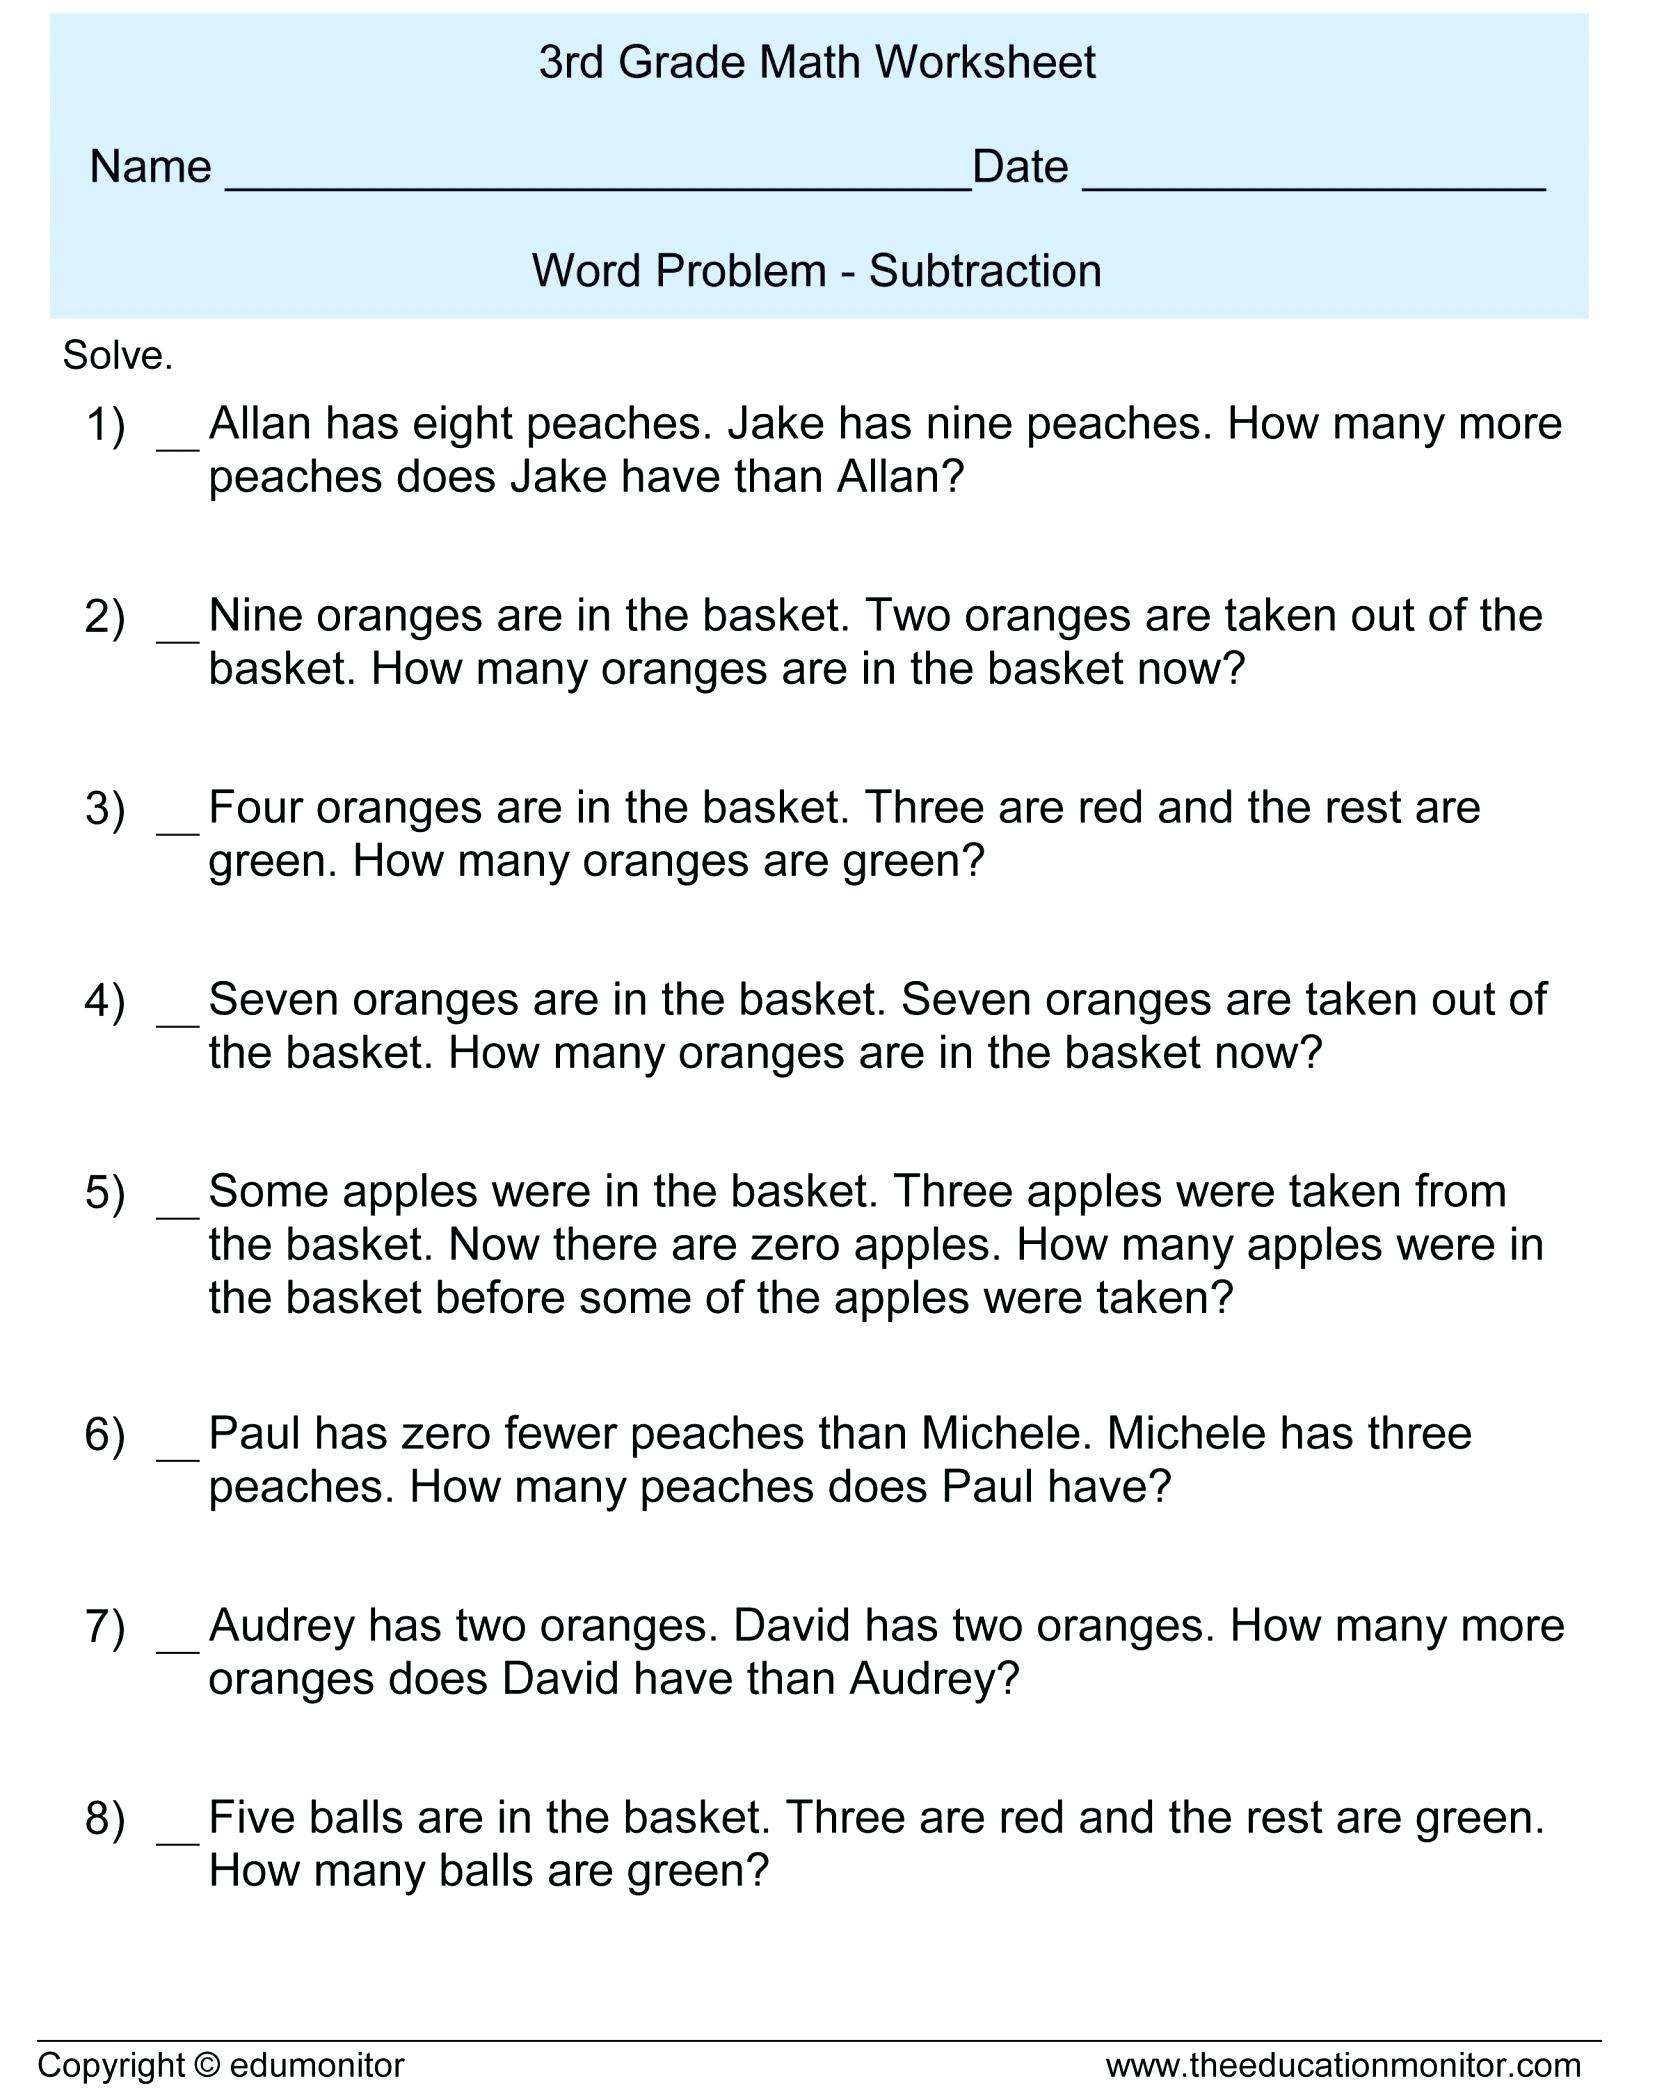 hight resolution of 7 Grade Math Worksheets Word Problems   Printable Worksheets and Activities  for Teachers